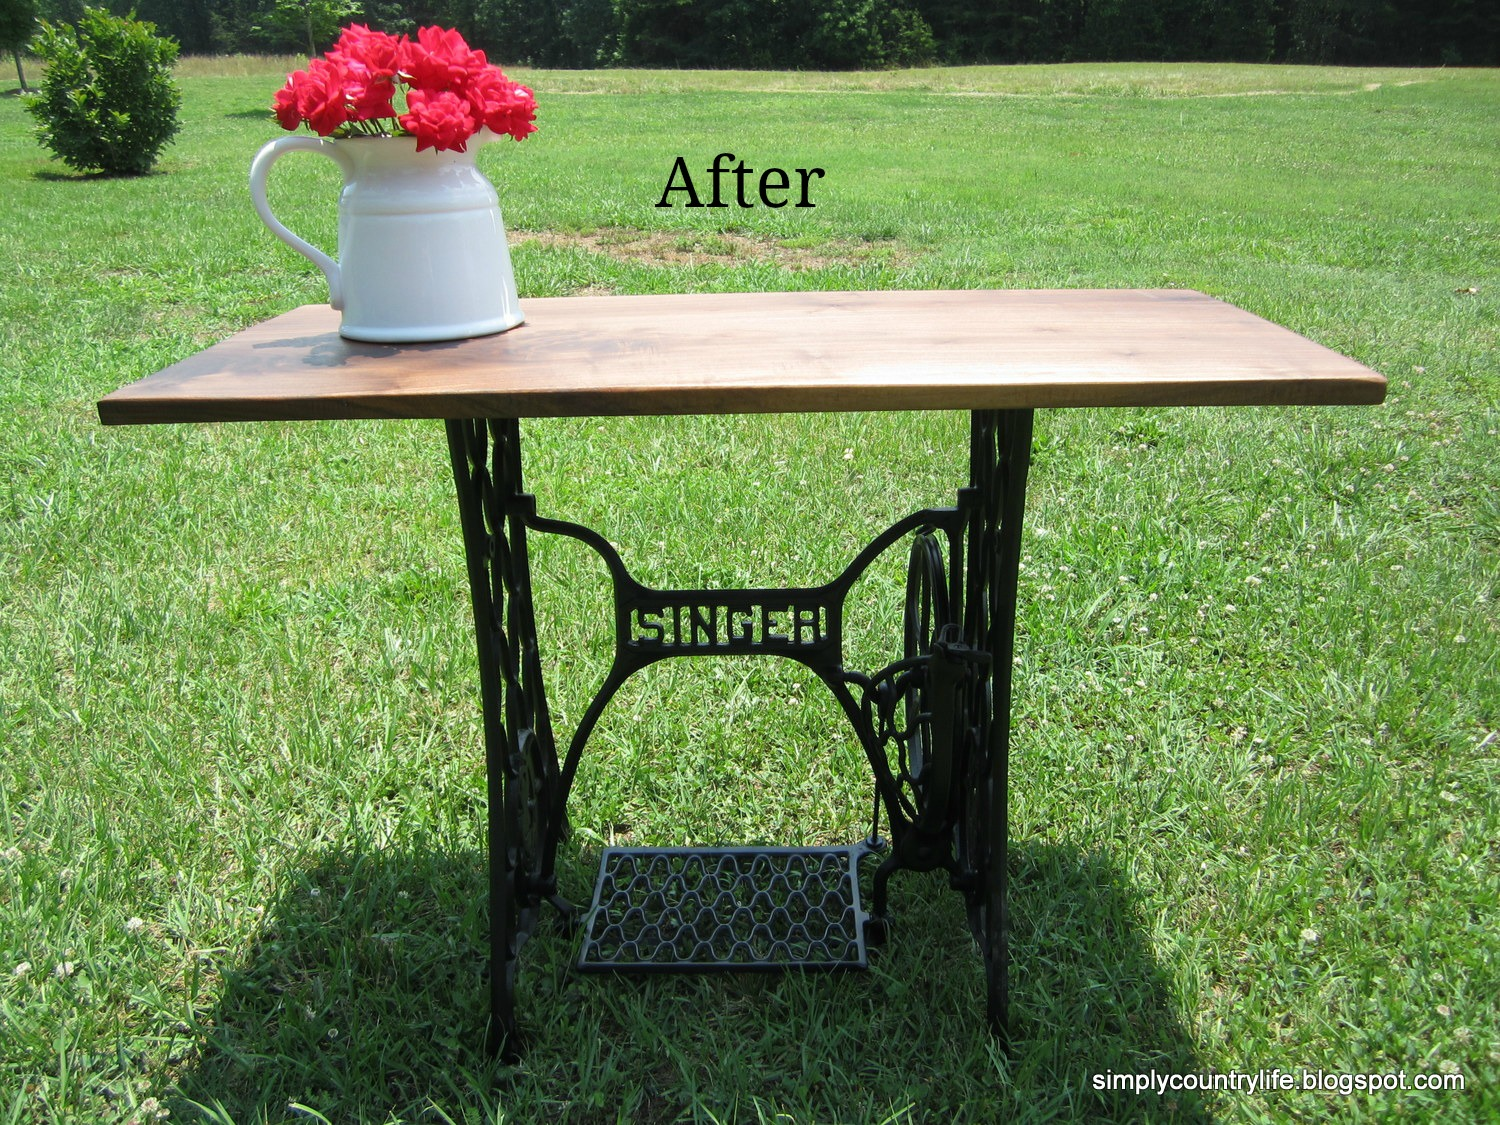 Simply country life antique singer sewing machine table makeover tuesday june 16 2015 watchthetrailerfo